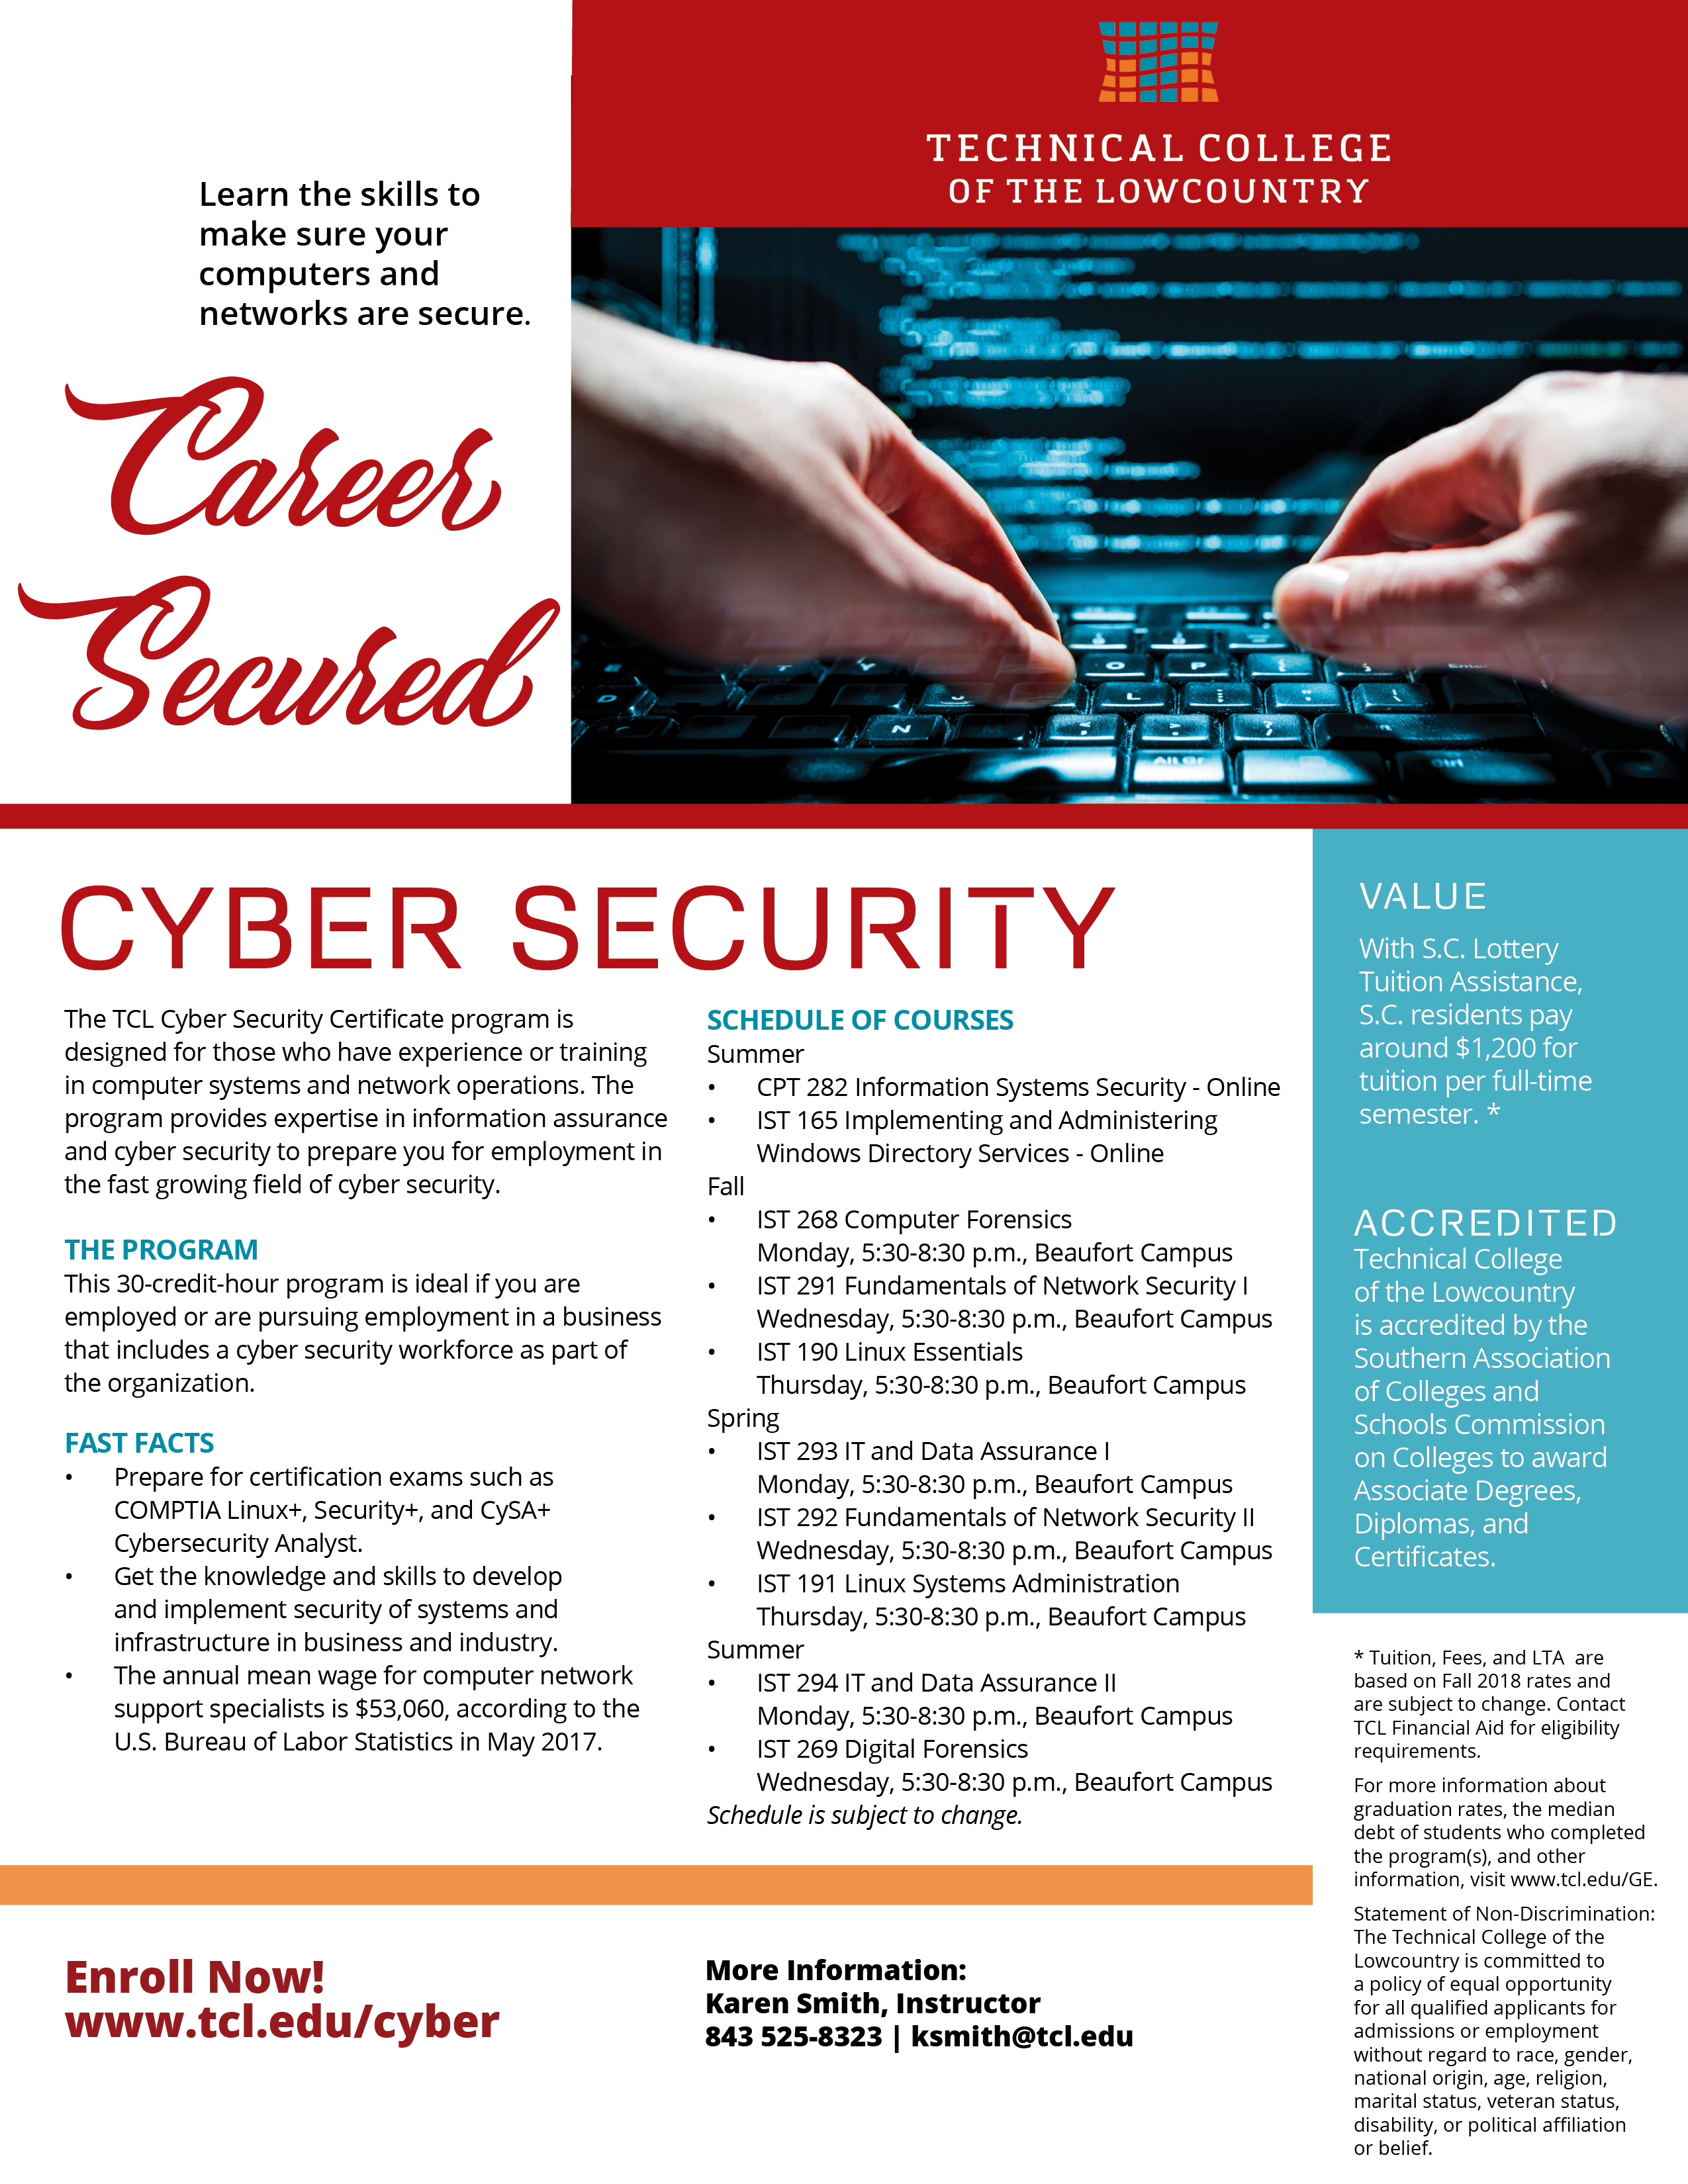 cyber security details